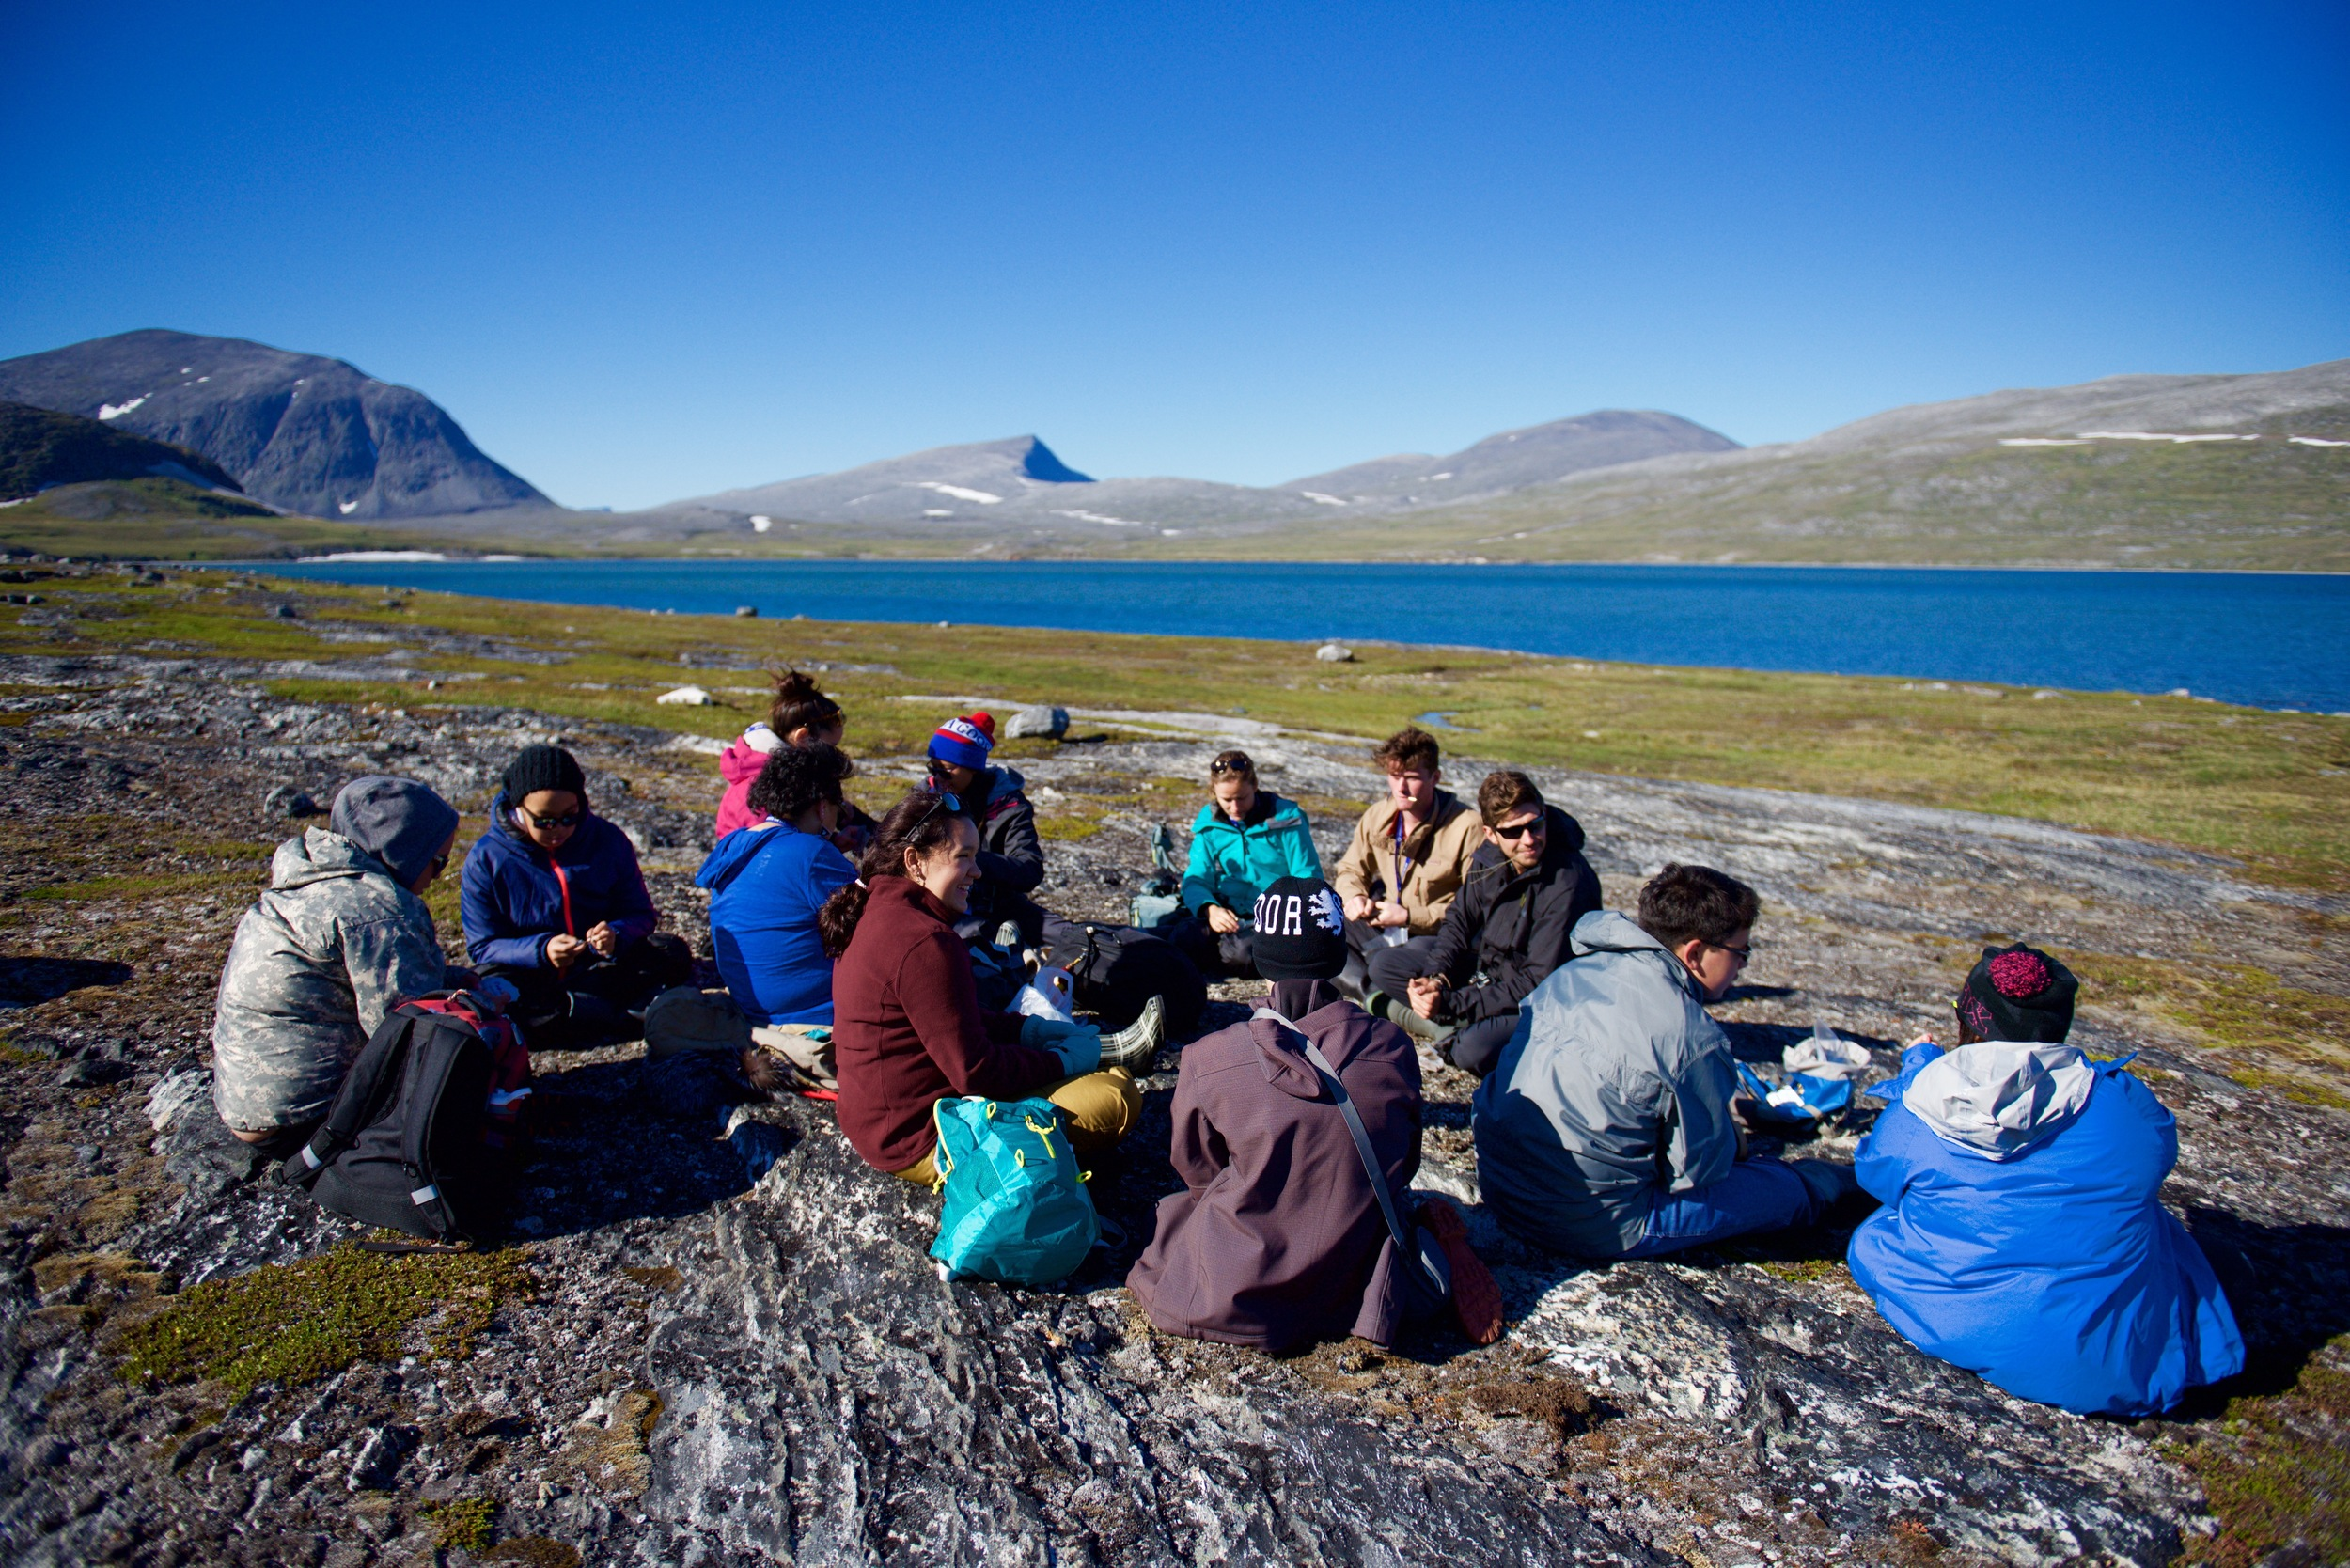 "Annie Petaulassie  teaches Inuit and qaluunaat youth how to make crafts from the land, at Eclipse Channel in the northern Torngats: ""I was brought up in a camp until I had to go to school, I have some knowledge of traditional life. I like to pass on our Inuktitut language, traditional songs, and our history to younger generations.""  With 33 years experience in teaching, Annie integrates Inuktitut in all subjects, from kindergarten to the  Nunavut Sivuniksavut  program. She's celebrated for her skills in sewing, beading, quilting, crocheting, embroidery, and making mittens, slippers, bags, hangings, parkas, and other useful and beautiful things.  ‪#‎teacher‬   ‪#‎ilisaiji‬   ‪#‎ᐃᓕᓴᐃᔨ‬"